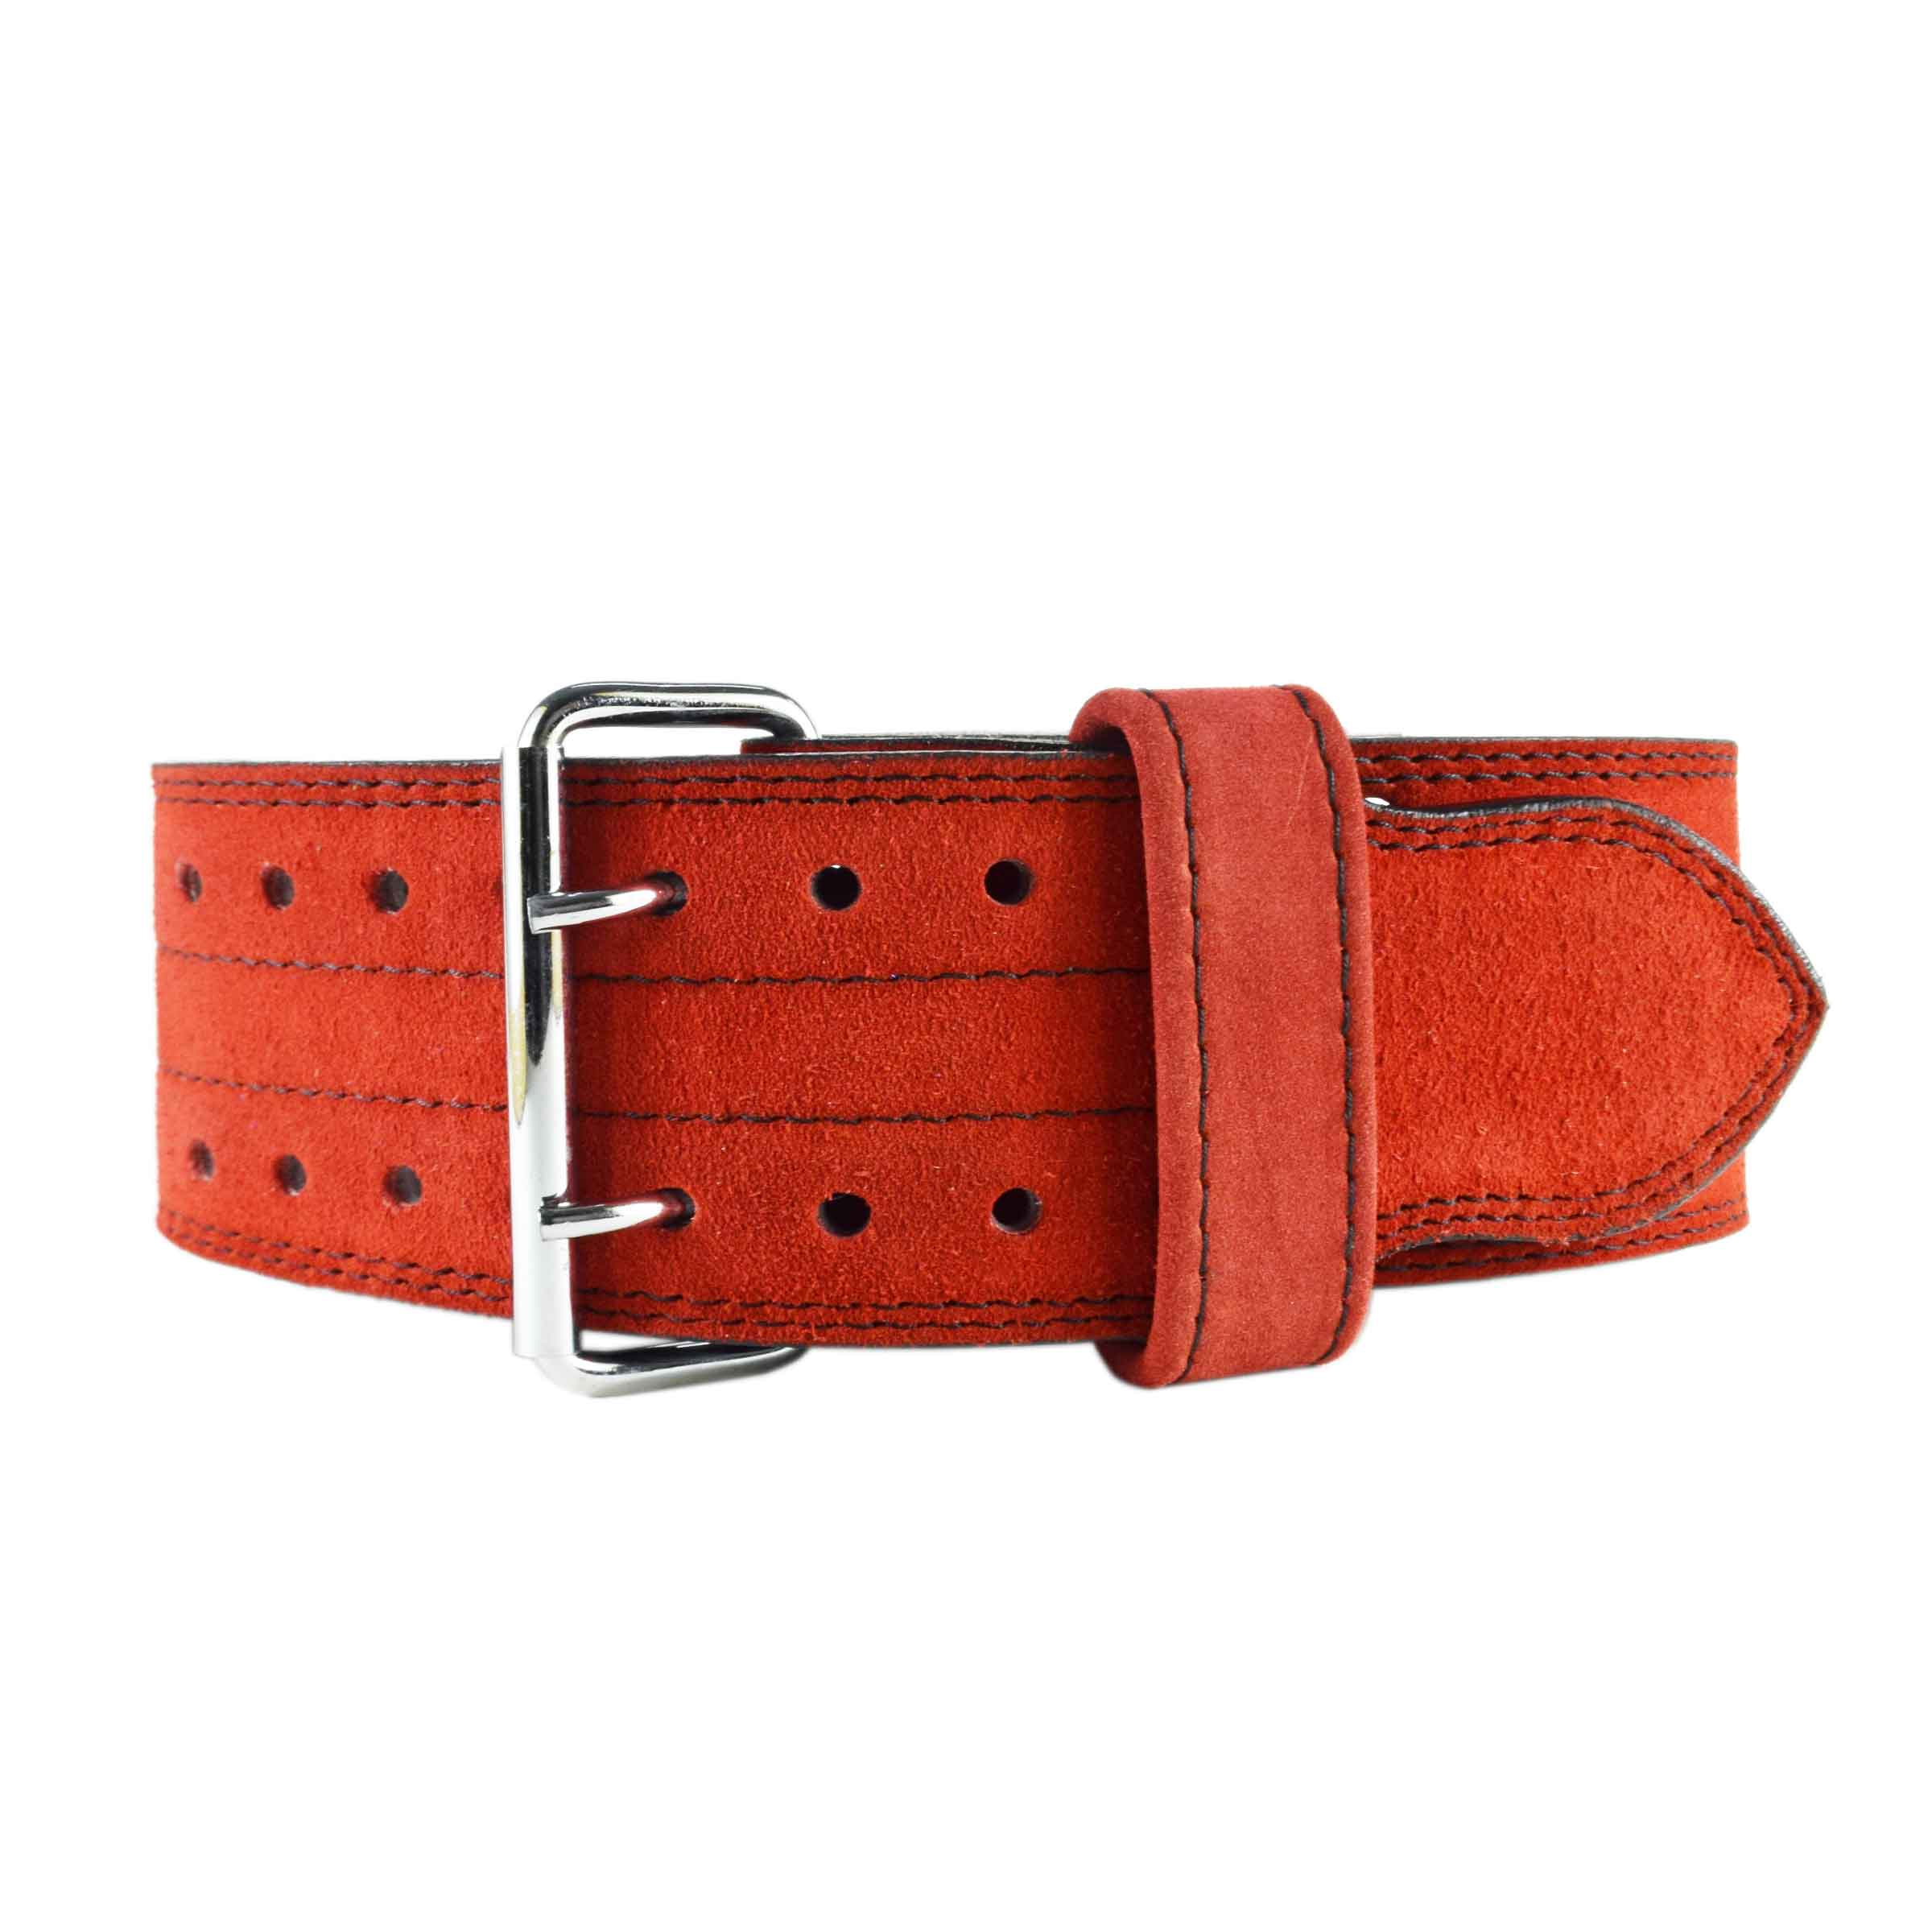 RED WEIGHTLIFTING BELT